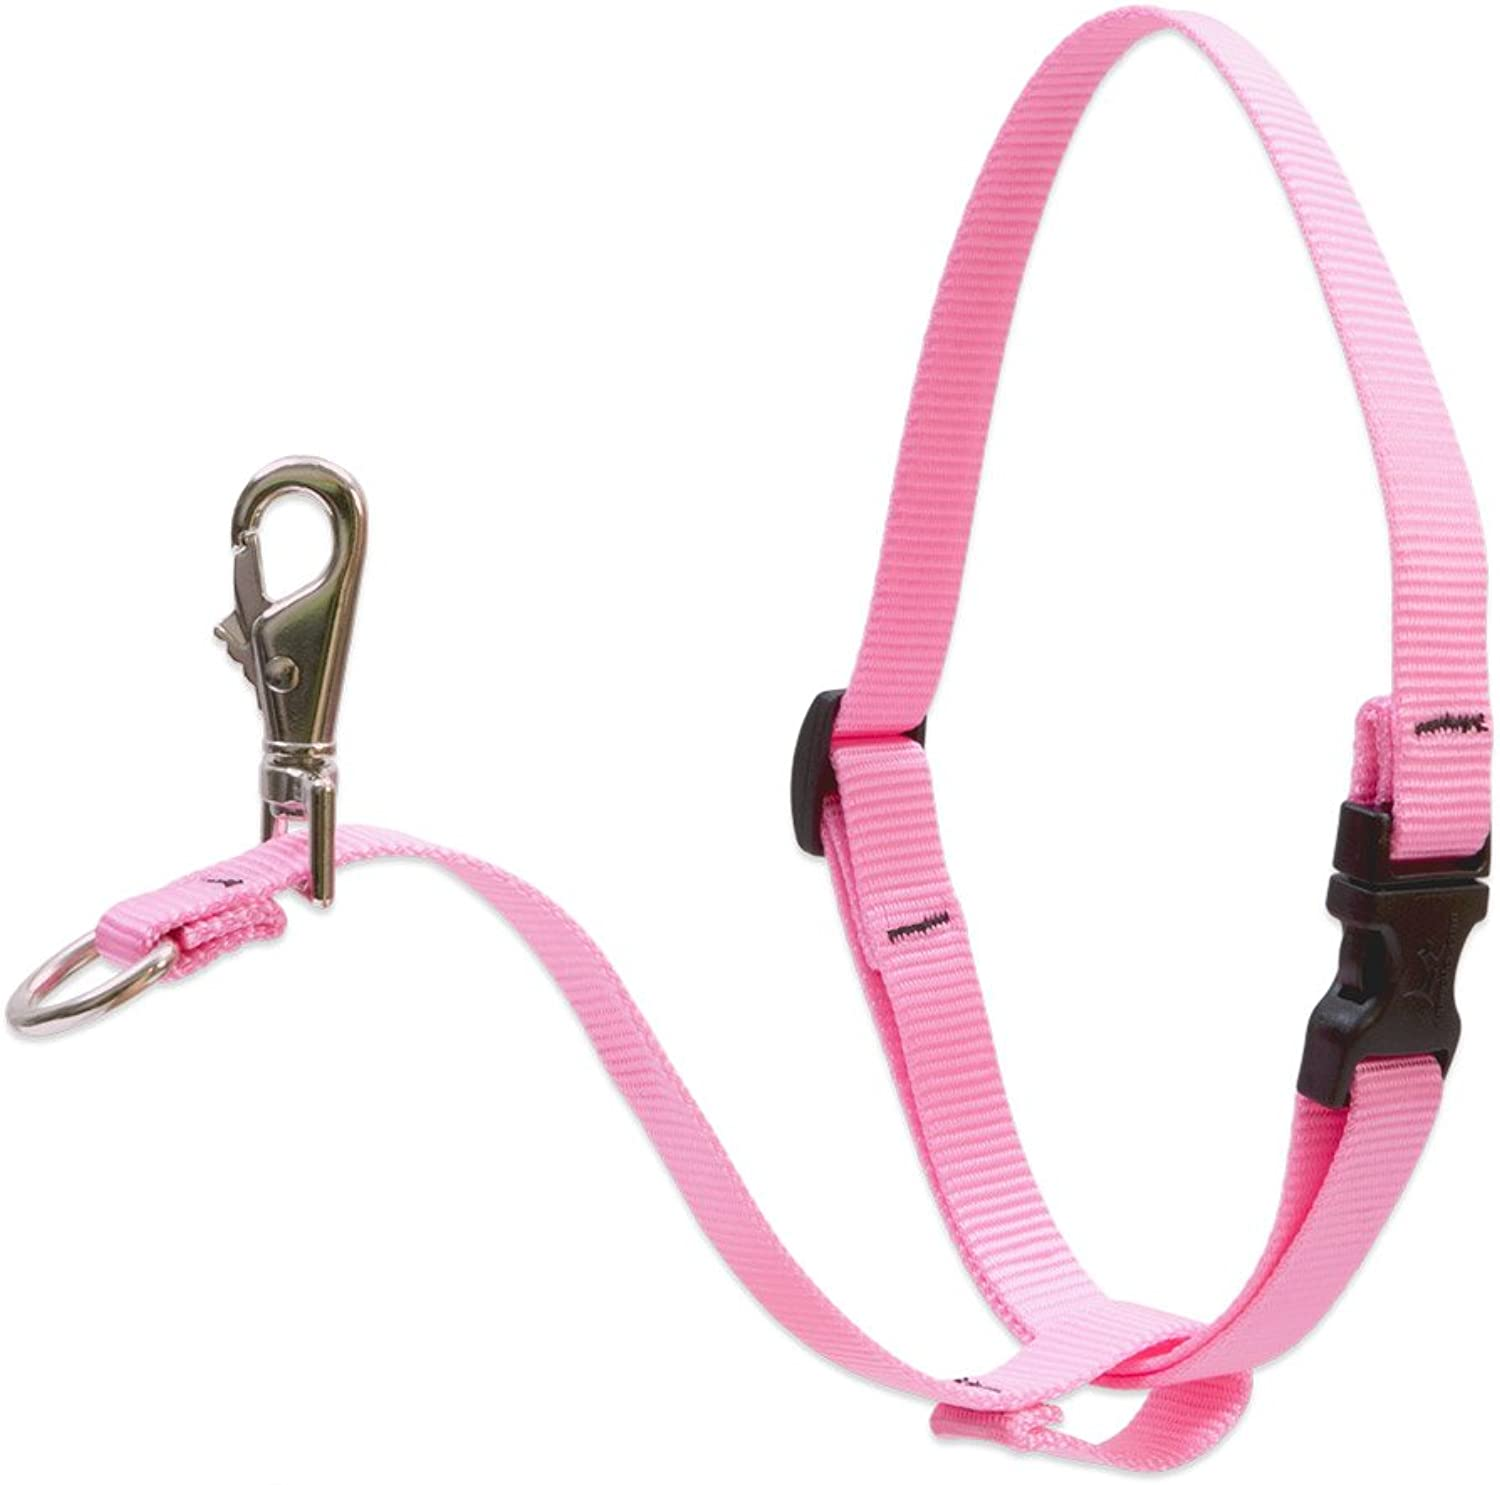 Lupine 1Inch Pink 2638 Inch No Pull Harness for Medium to Large Dogs